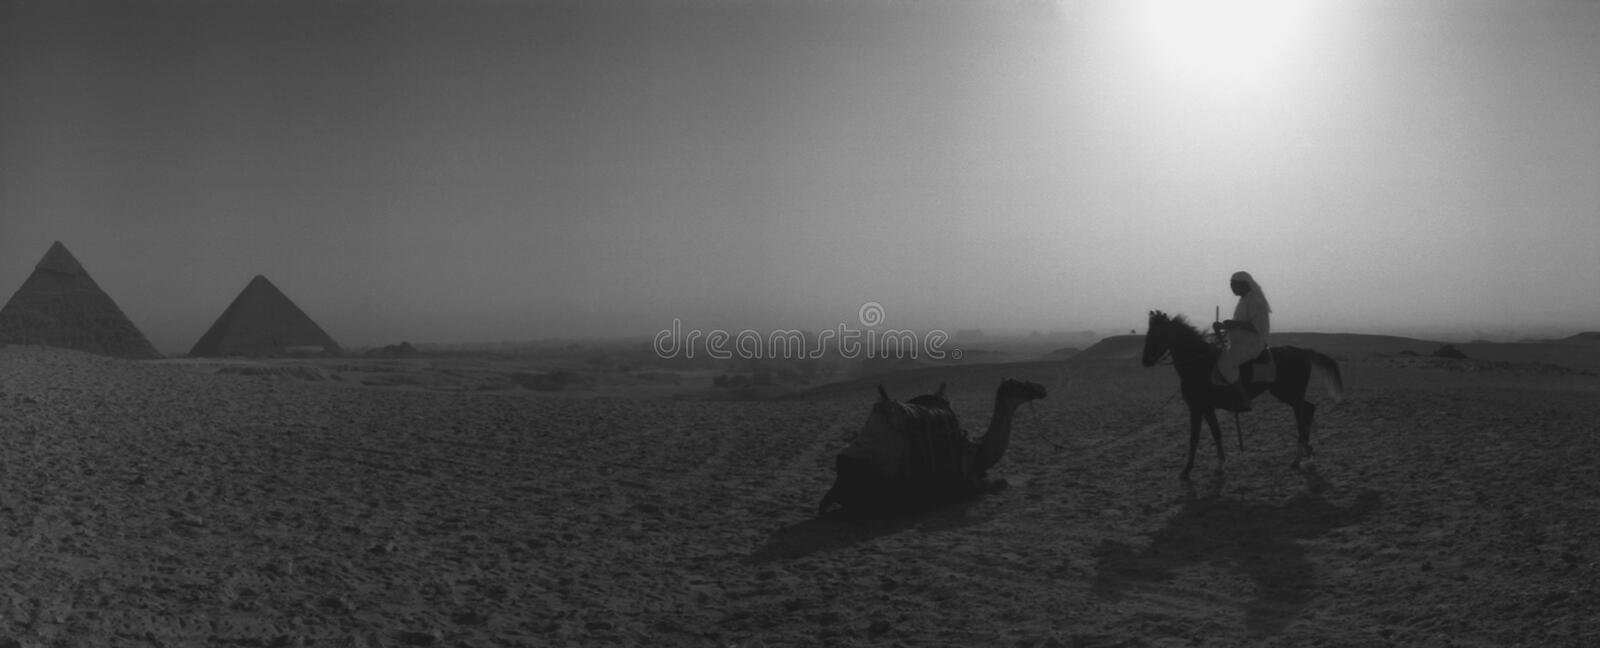 Morning Sun Over Pyramids of Giza Egypt During The Pyramids Sunrise Camel Riding royalty free stock photo